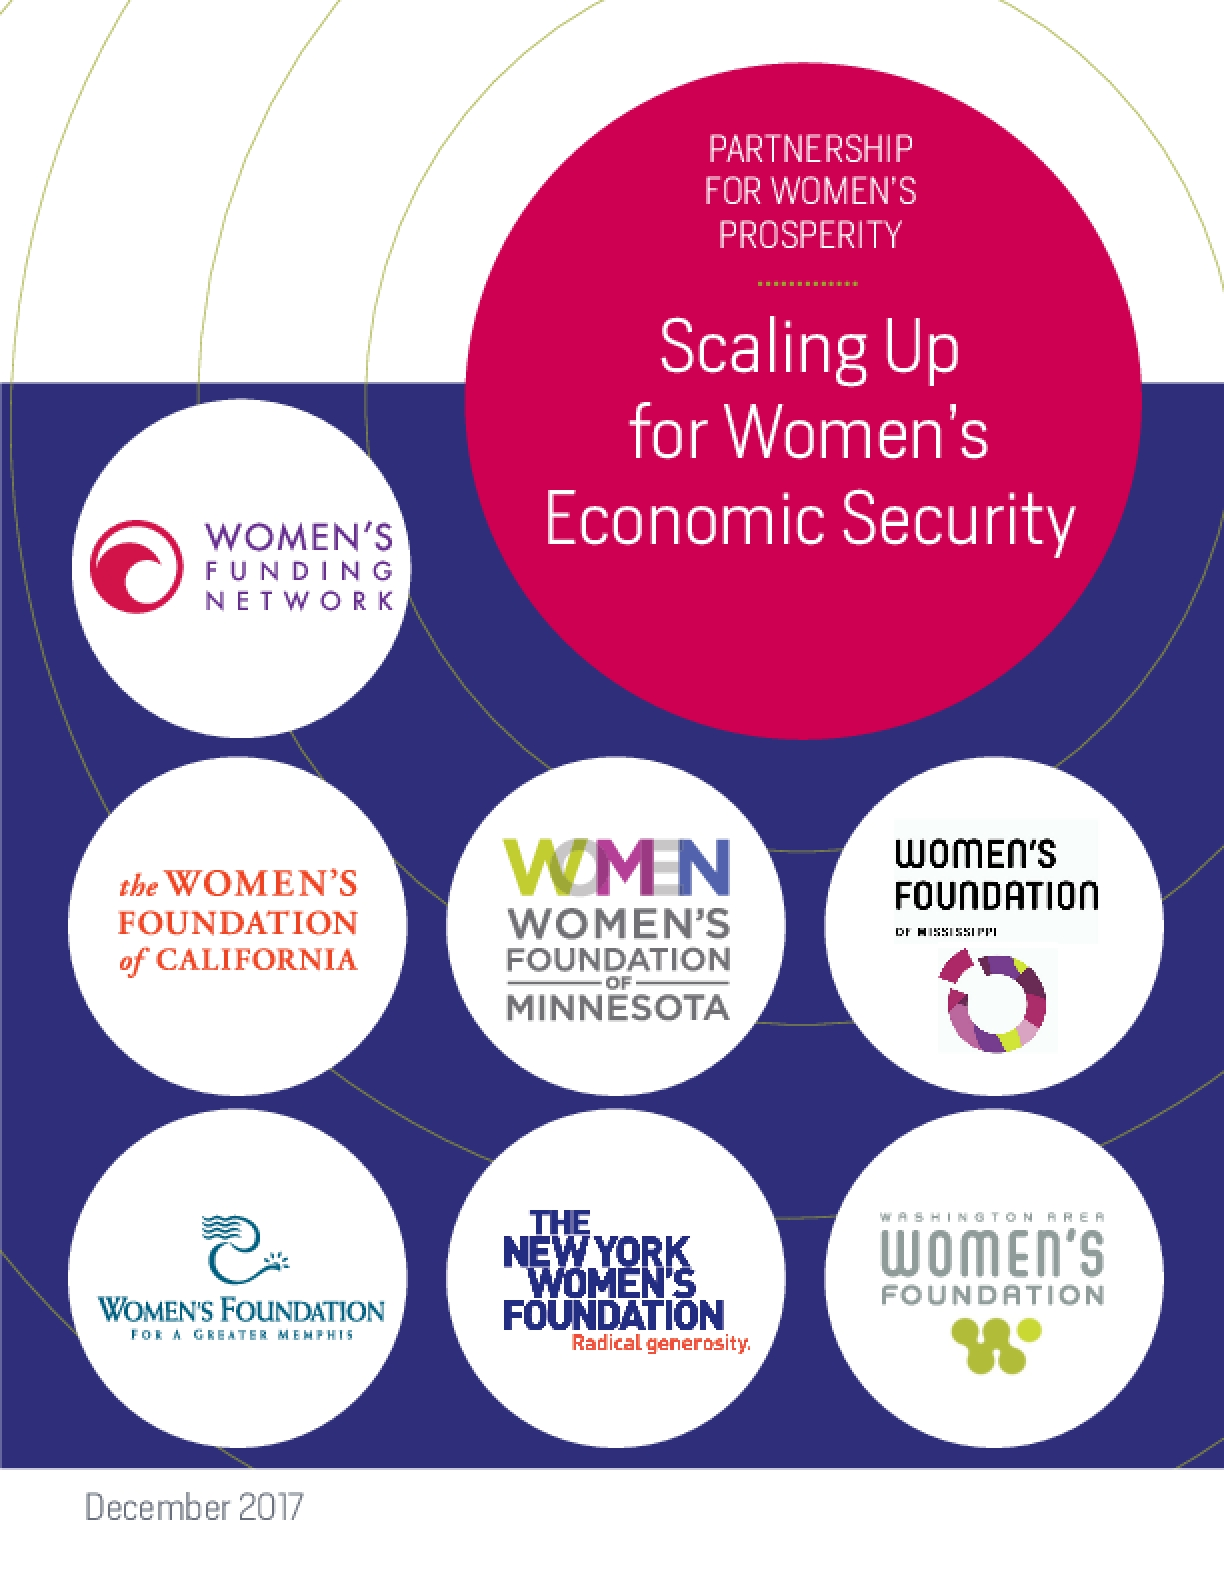 Partnership for Women's Prosperity: Scaling Up for Women's Economic Security